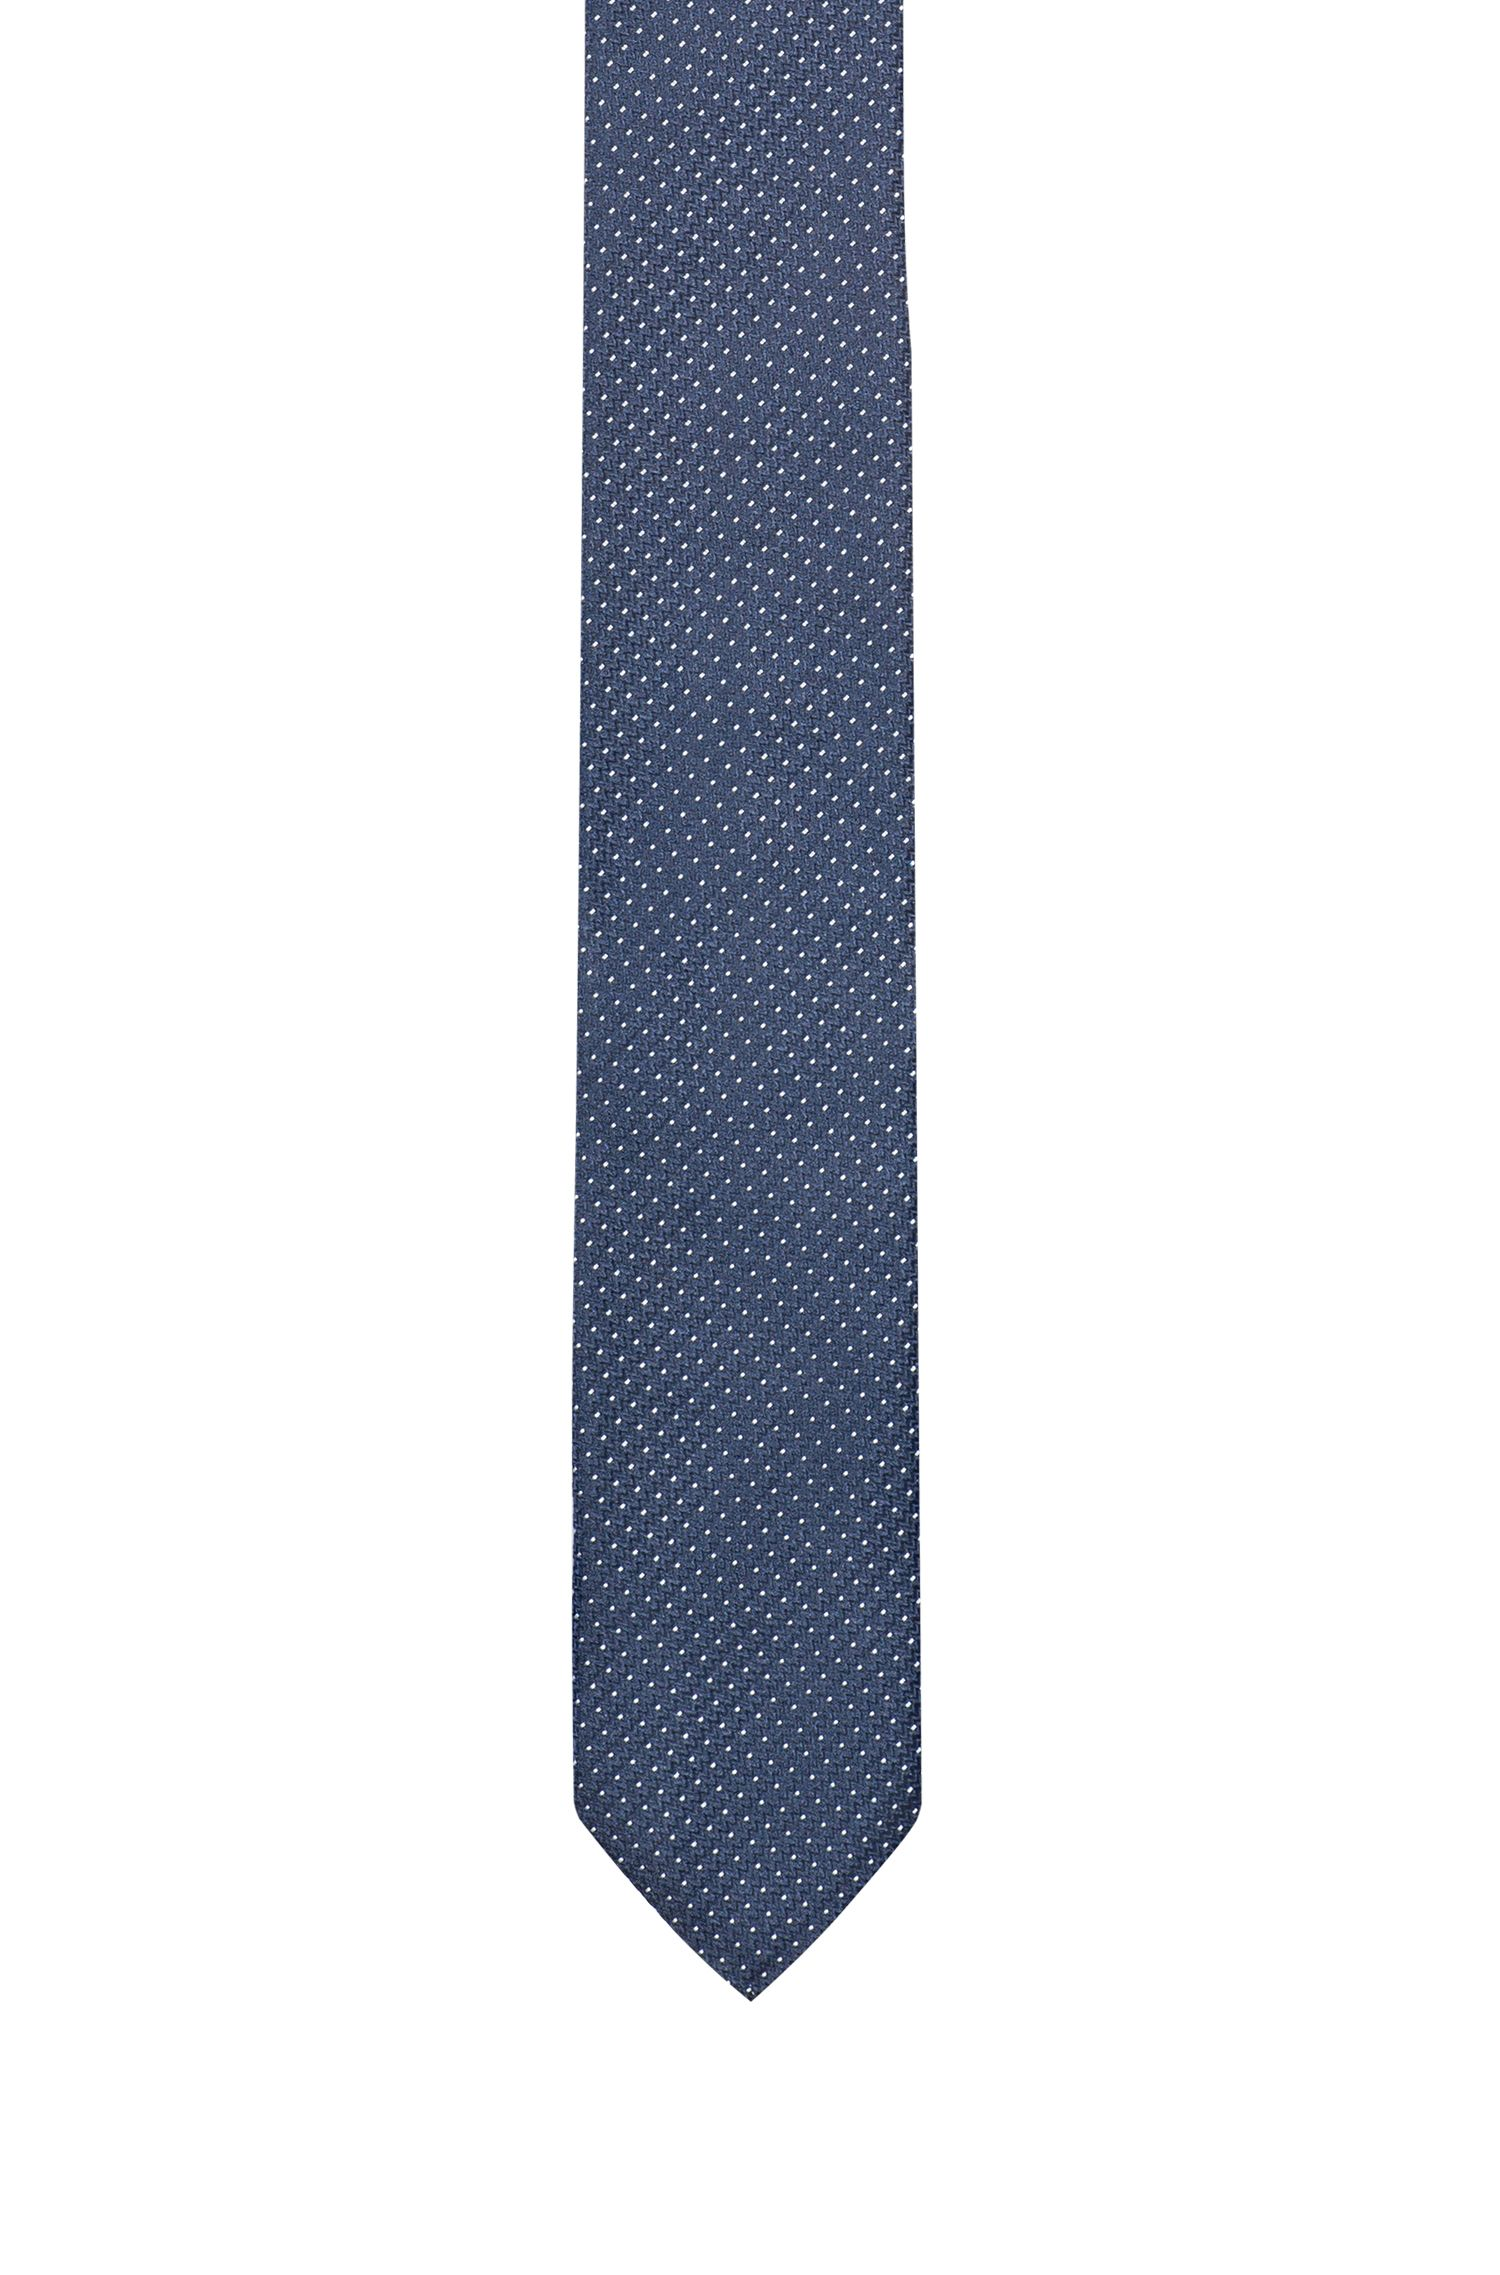 Silk-jacquard tie with micro dots